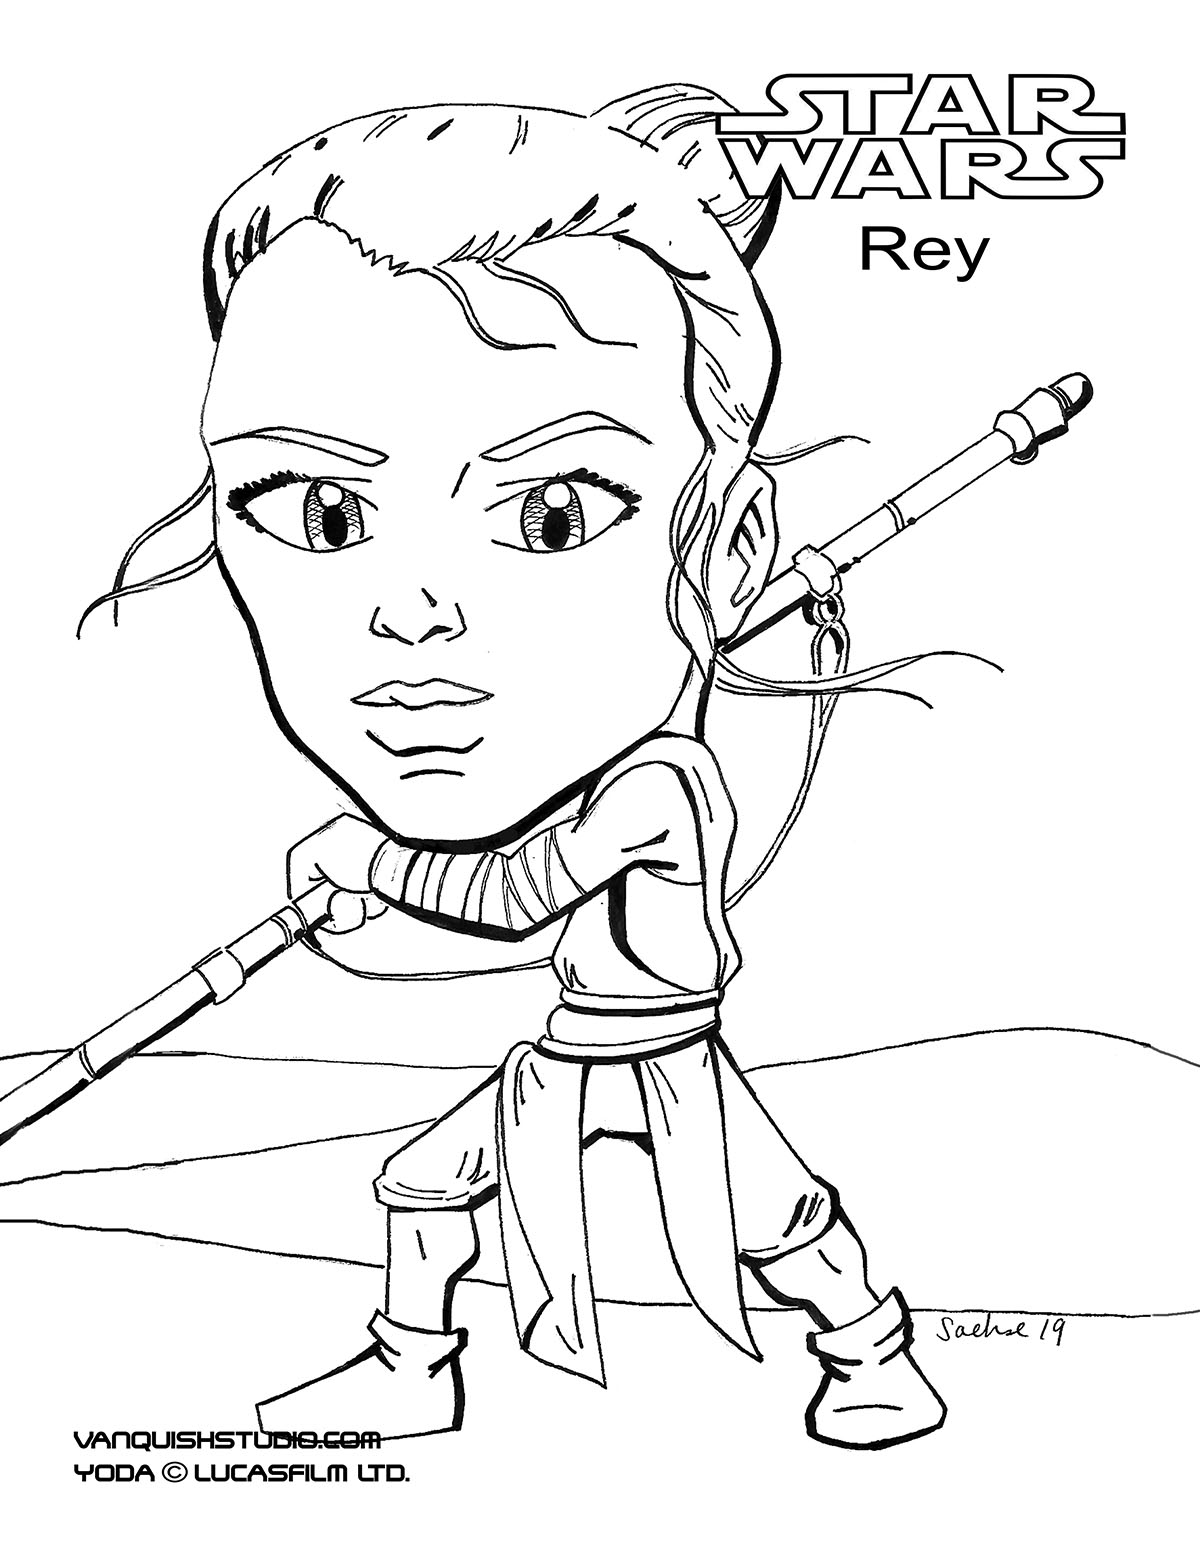 Rey-Coloring-page